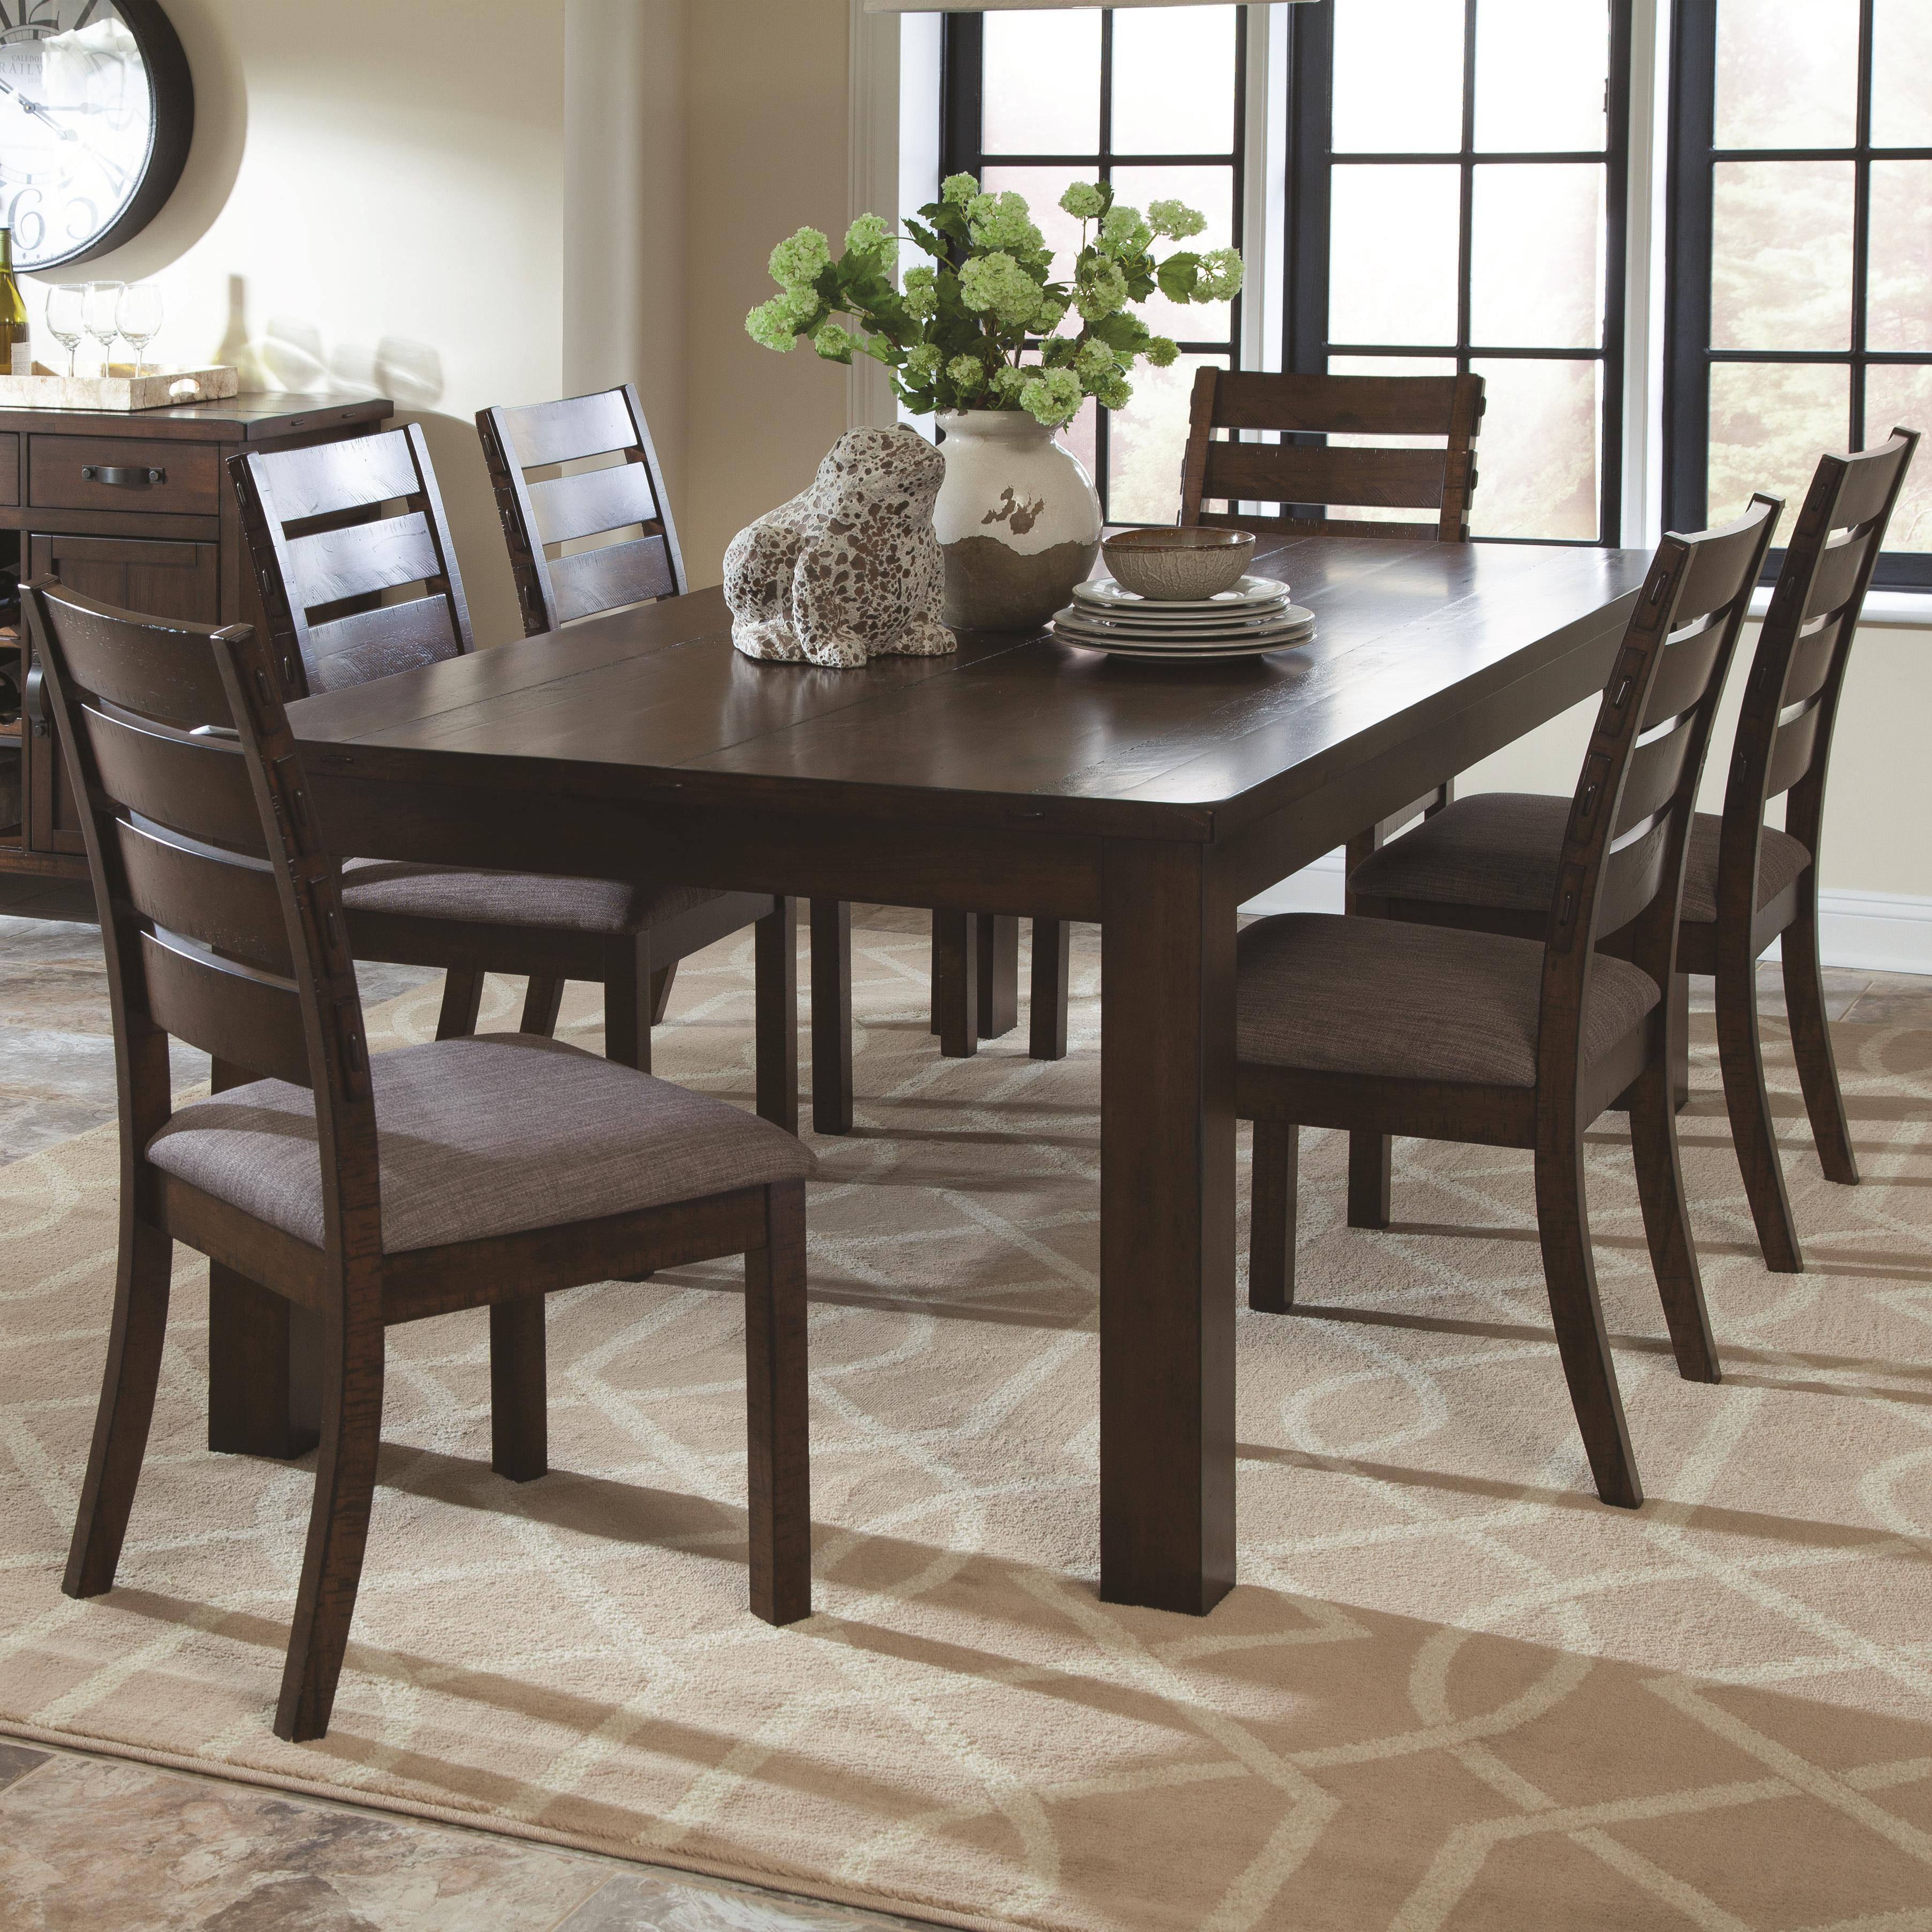 coaster wiltshire 7 piece rustic table and slat back chair set coaster wiltshire 7 piece table and chair set item number 106361 6x106362